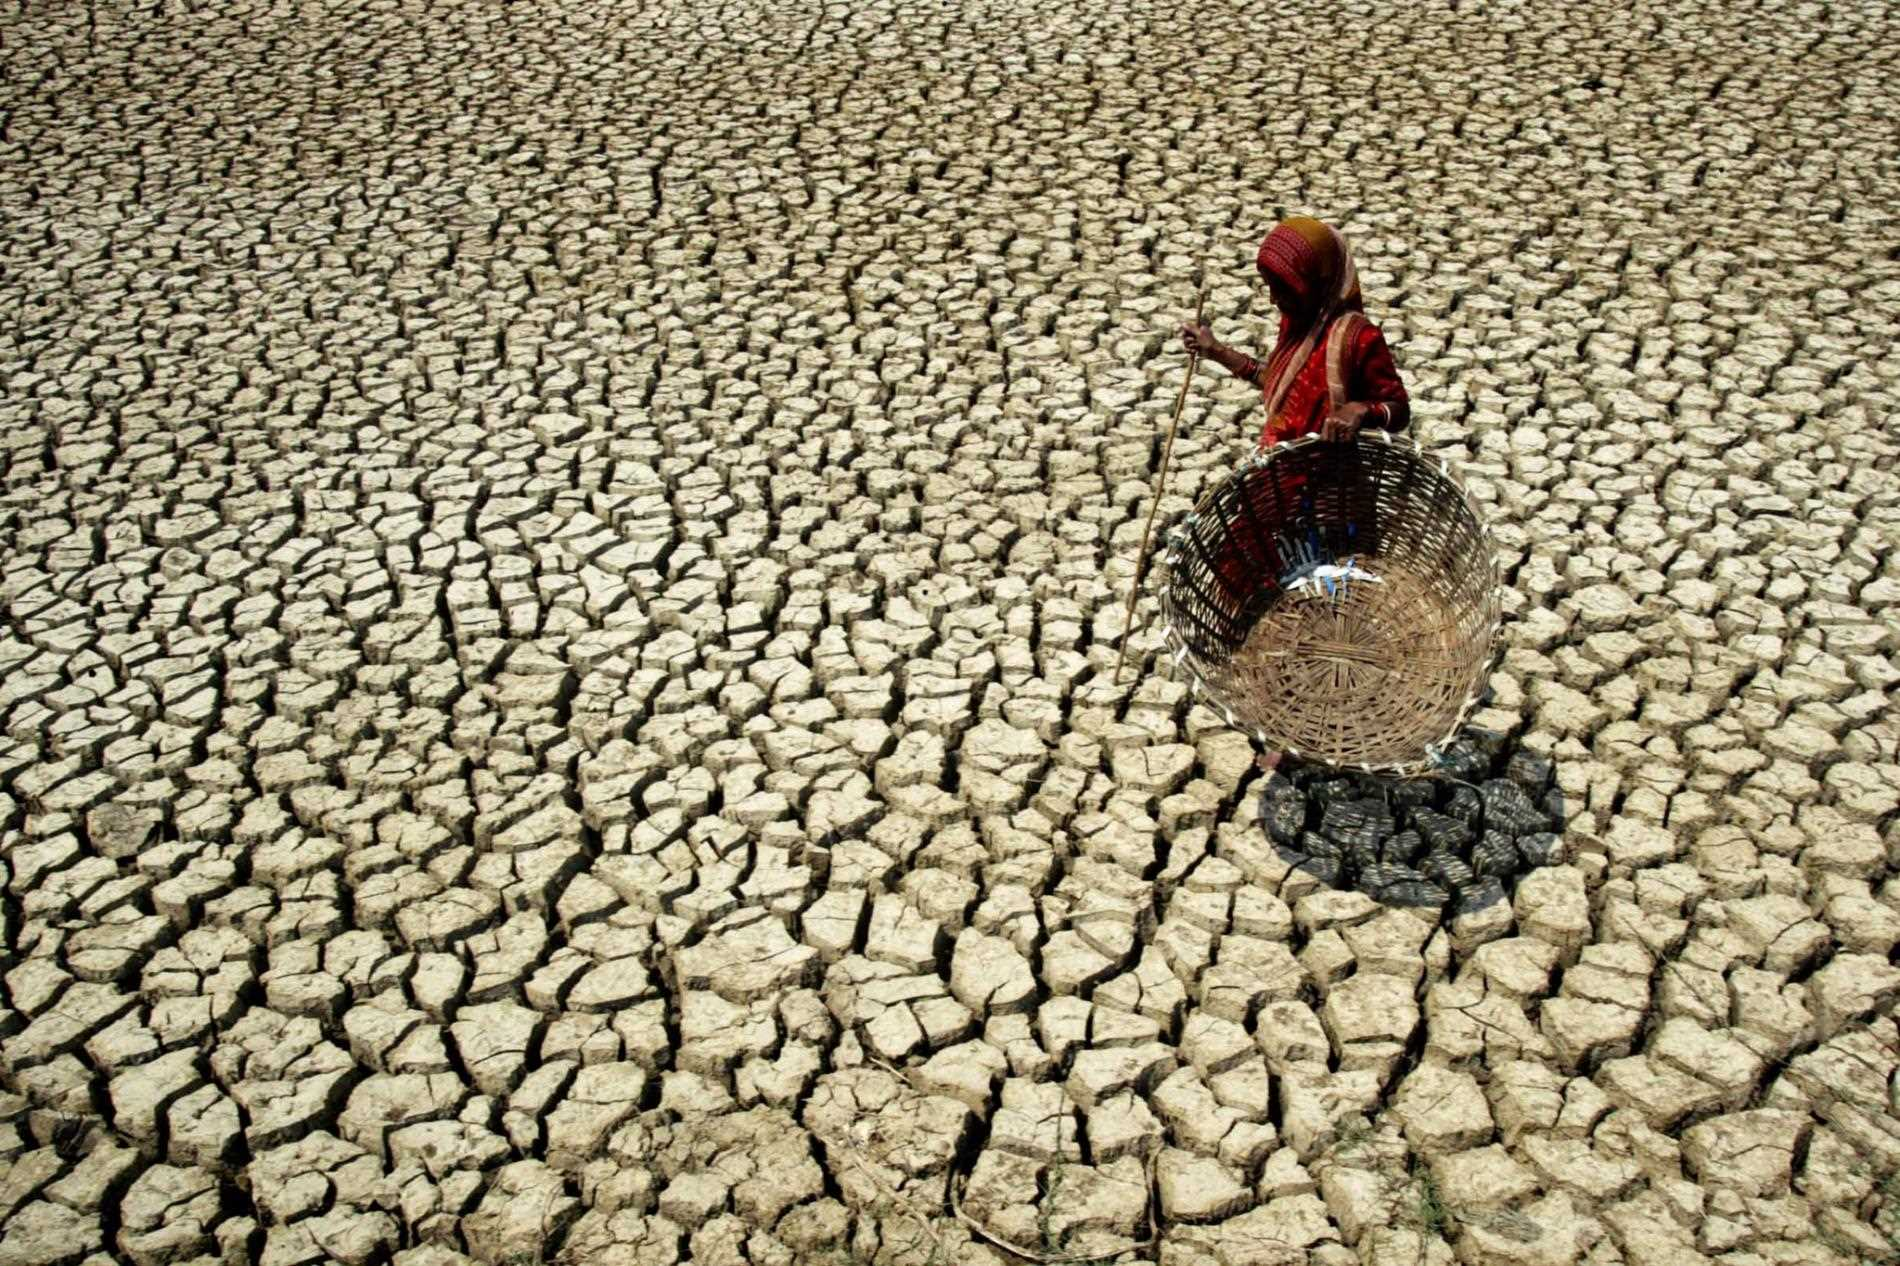 Global Warming: Worrisome Issue for India